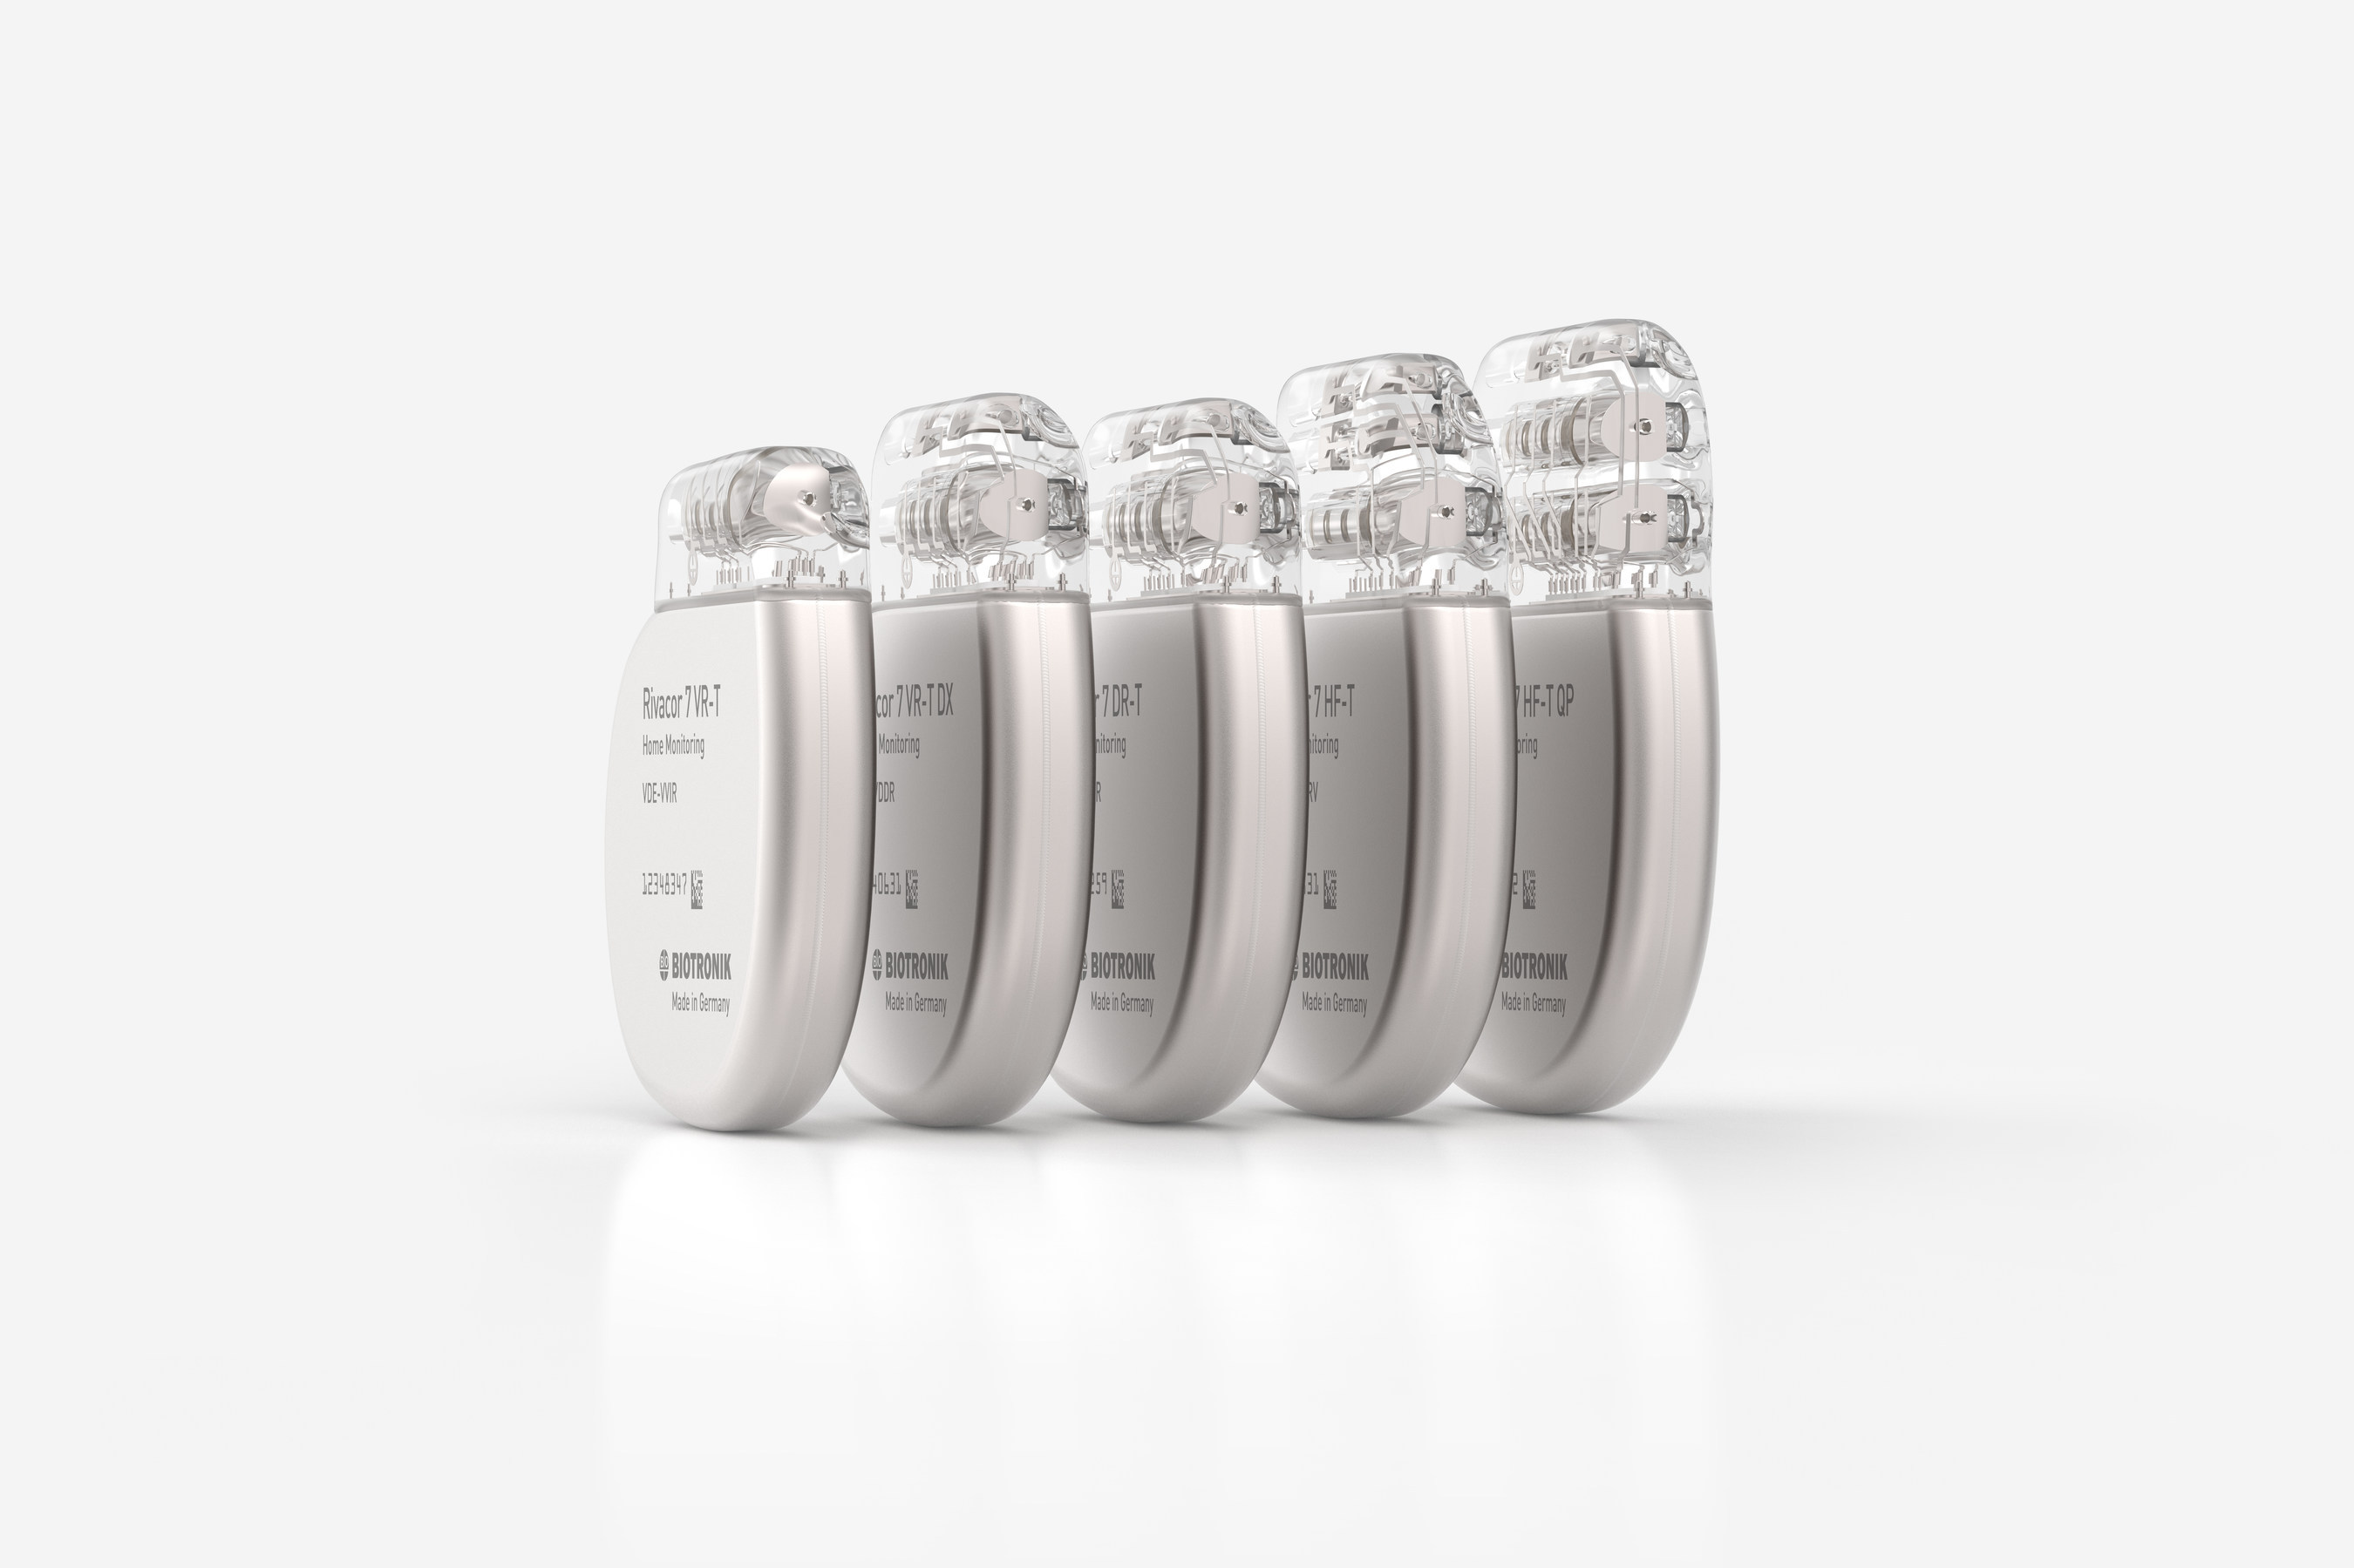 The Acticor and Rivacor systems are designed to incorporate more diagnostic and therapeutic capabilities in smaller devices with extended battery longevity.